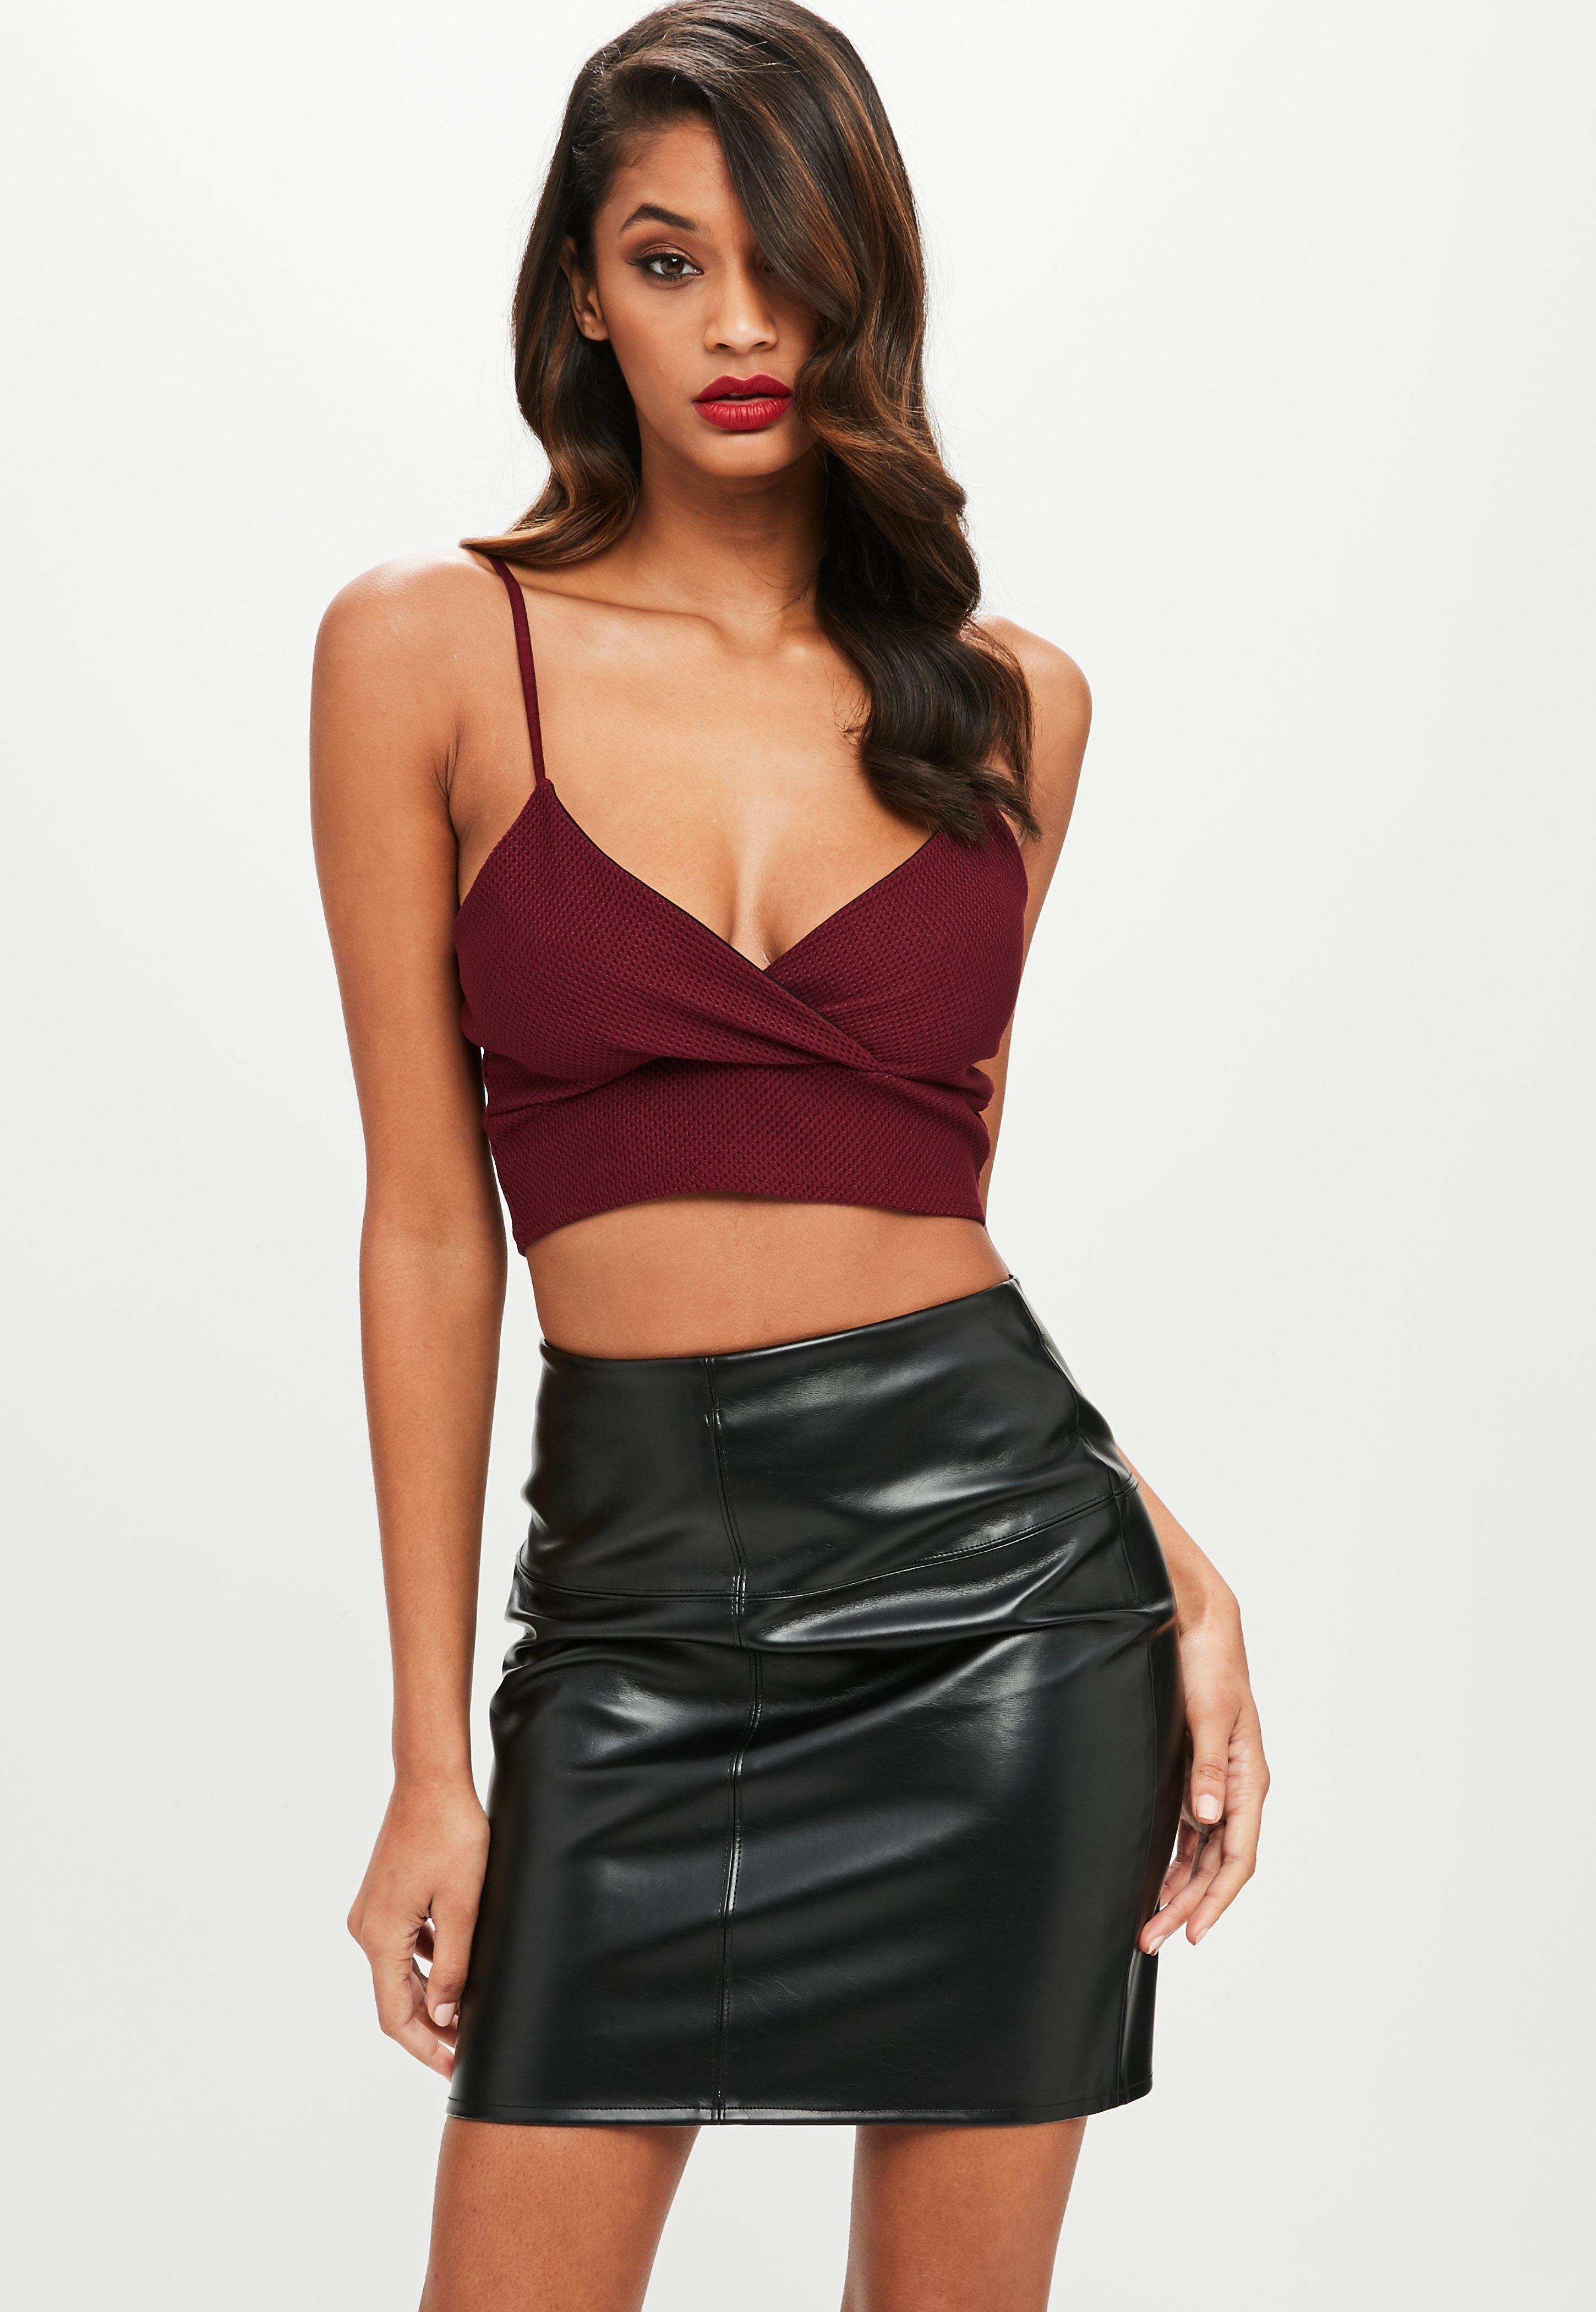 Lyst missguided petite purple bralette top in purple for Petite designers